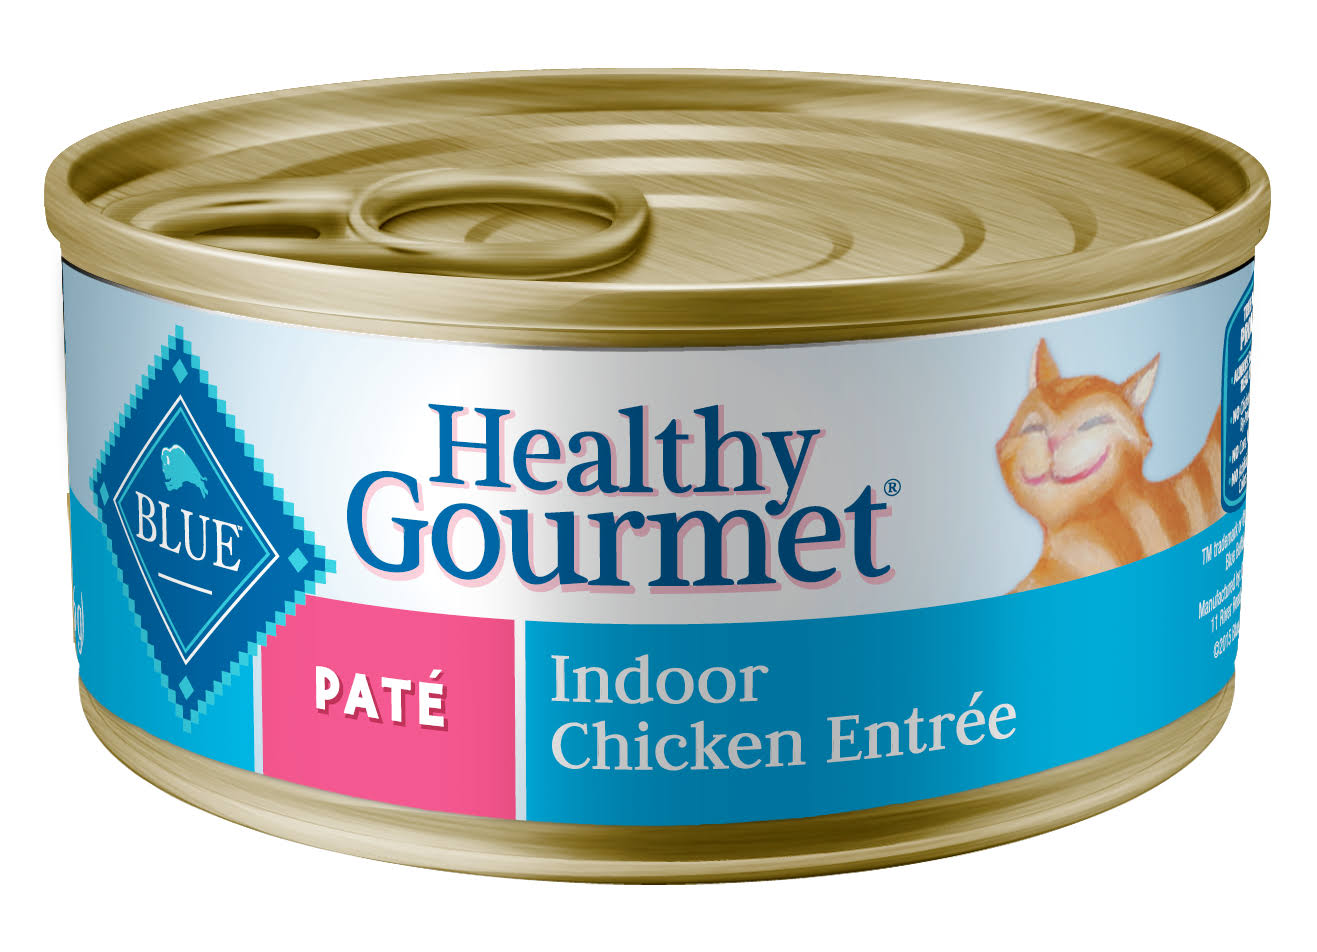 Blue Buffalo Healthy Gourmet Pate Adult Canned Cat Food - Indoor Chicken Entree, 5.5oz